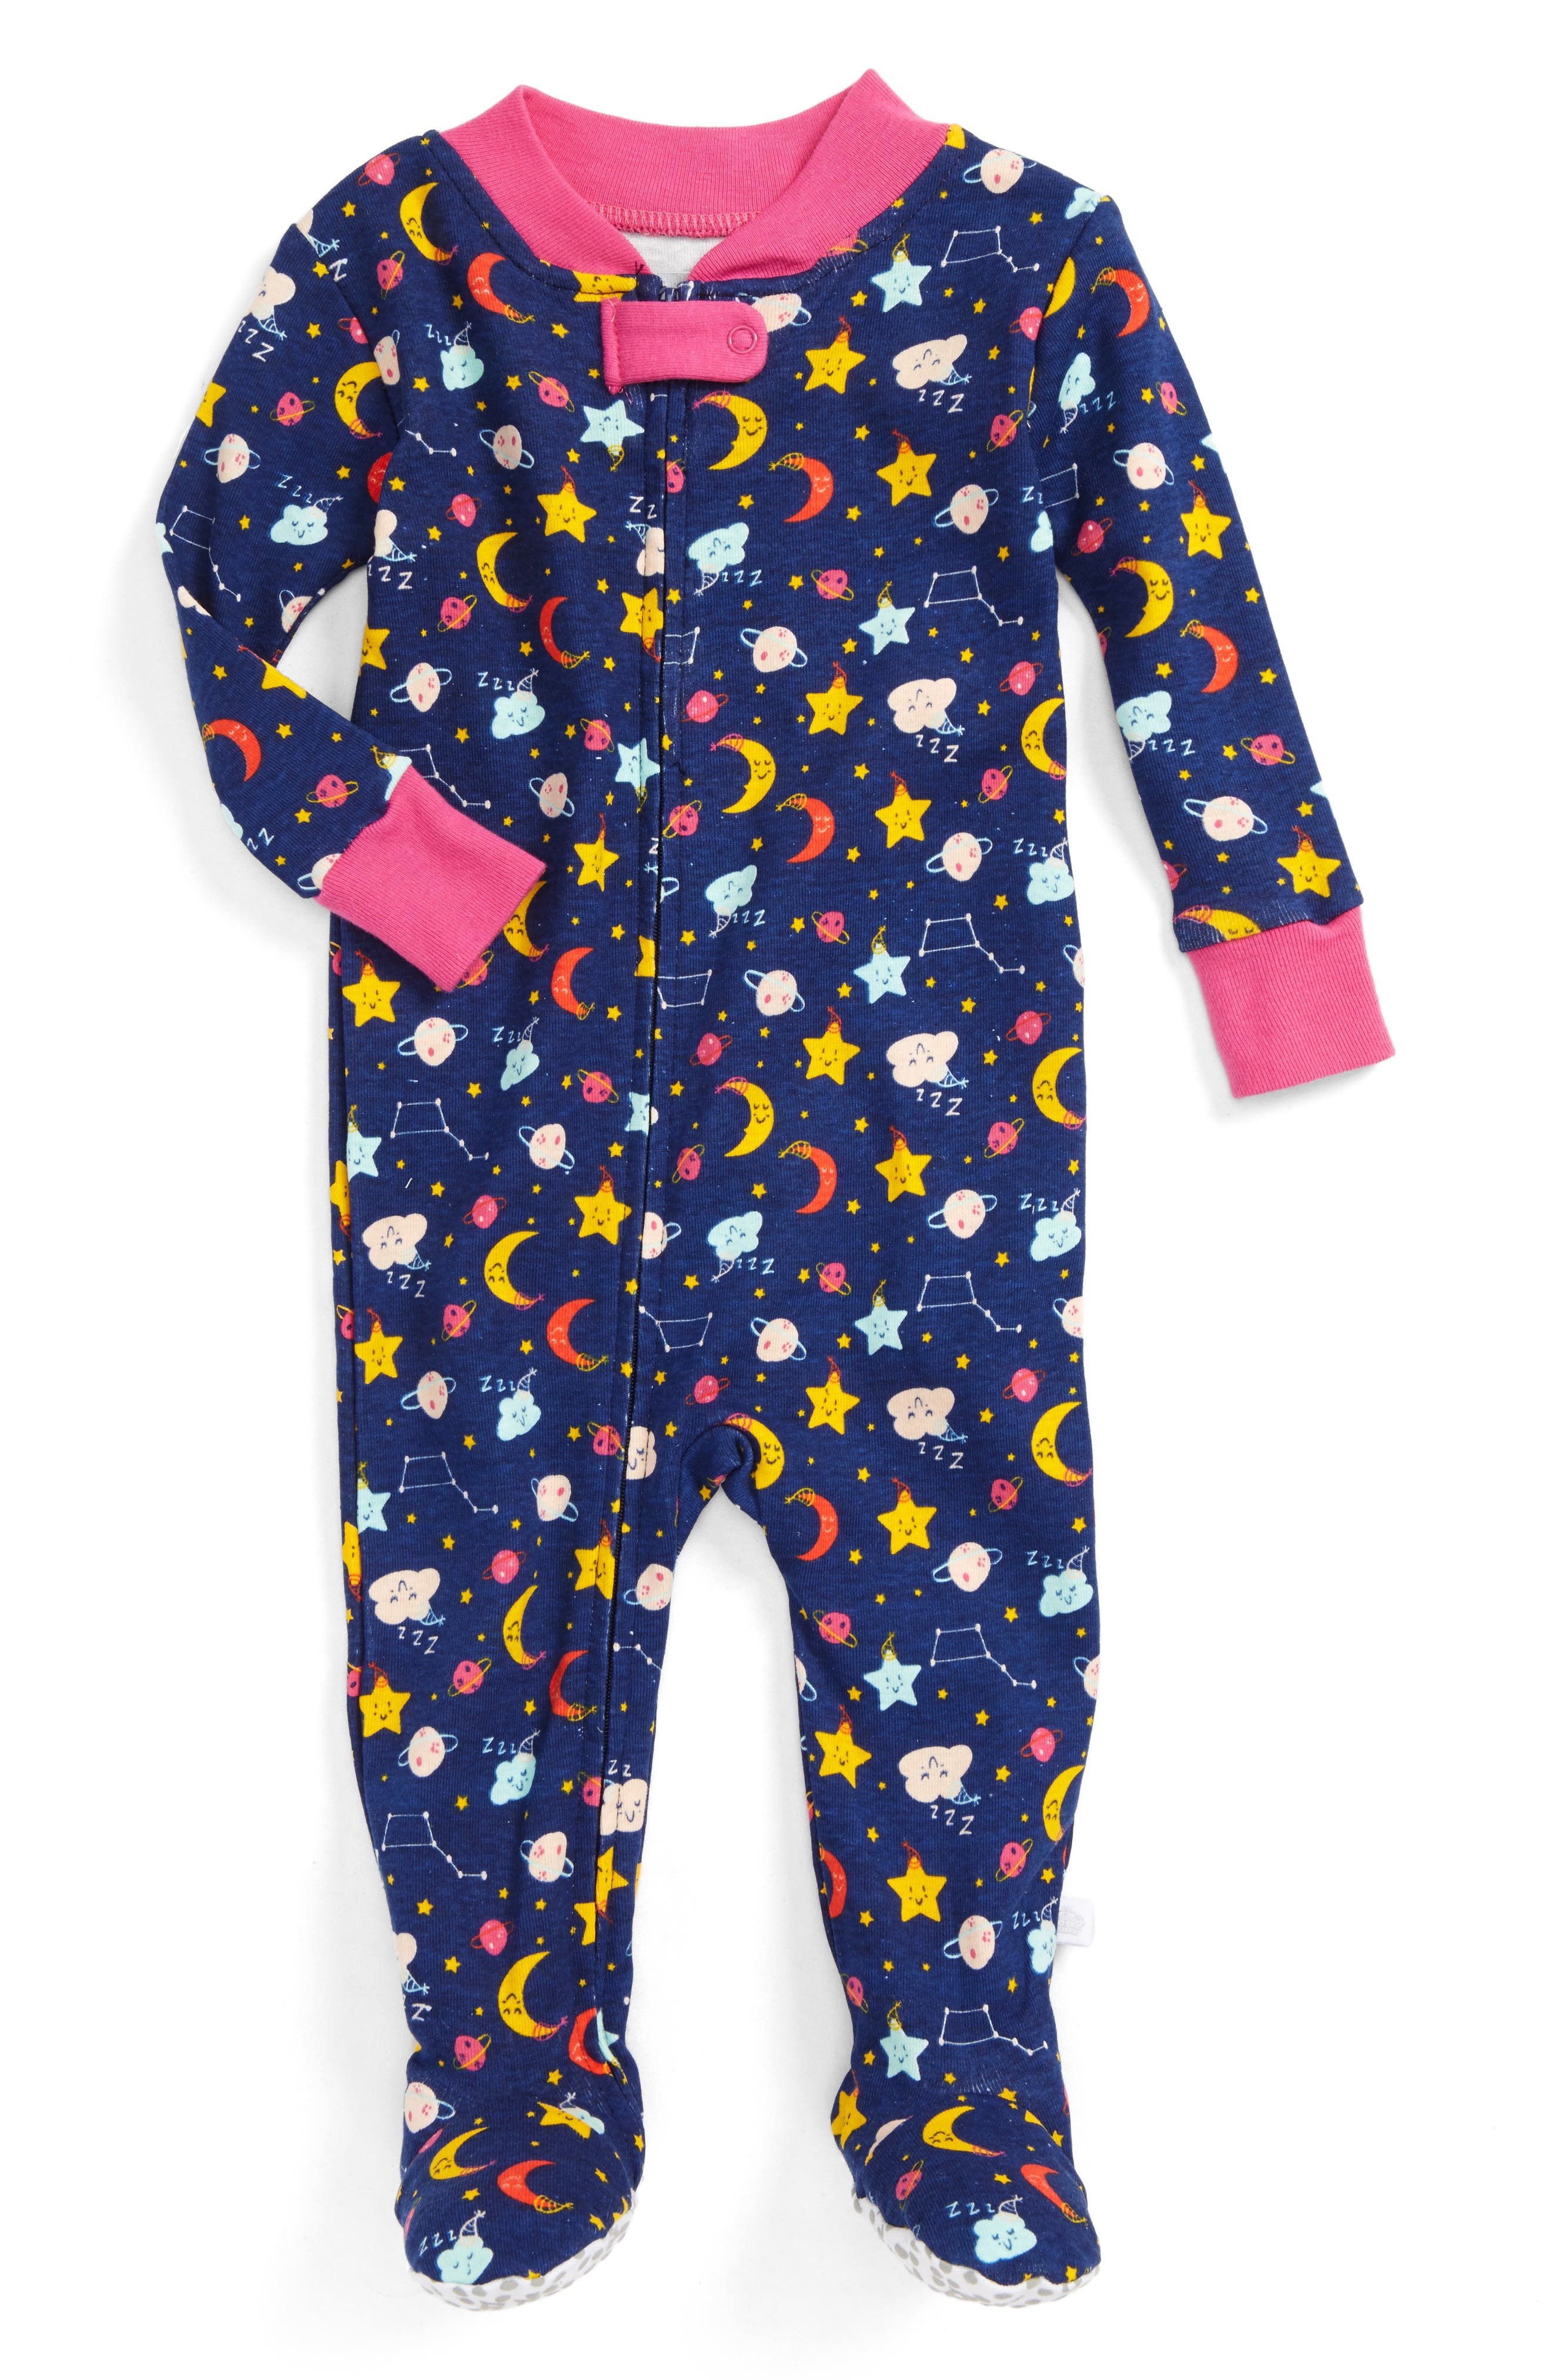 Galaxy Fitted One-Piece Pajamas,                             Main thumbnail 1, color,                             410